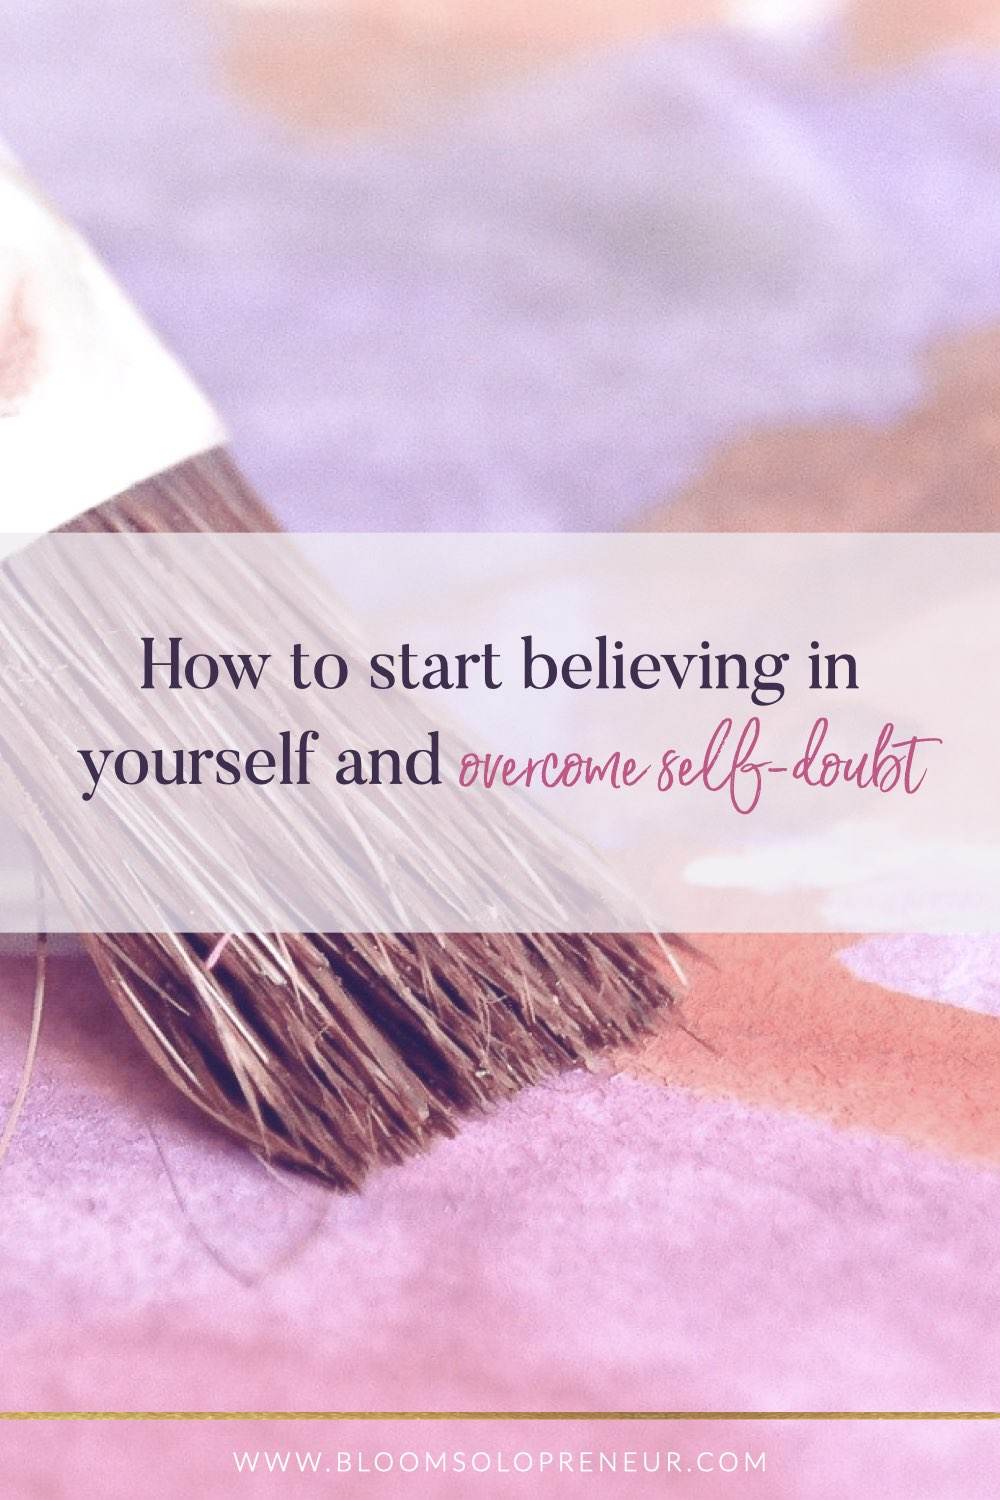 We all suffer and struggle with self-doubt and stop believing in yourself when we want to do something different. Not only at the start of our business journey, but when we try and grow our business, the self-doubt creeps back in. Believing in yourself to start something new takes courage. It's one thing to have a dream of starting a new business, but it's something else to have the belief in yourself to turn that dream into a successful and profitable business that you love. #bloomsolopreneur